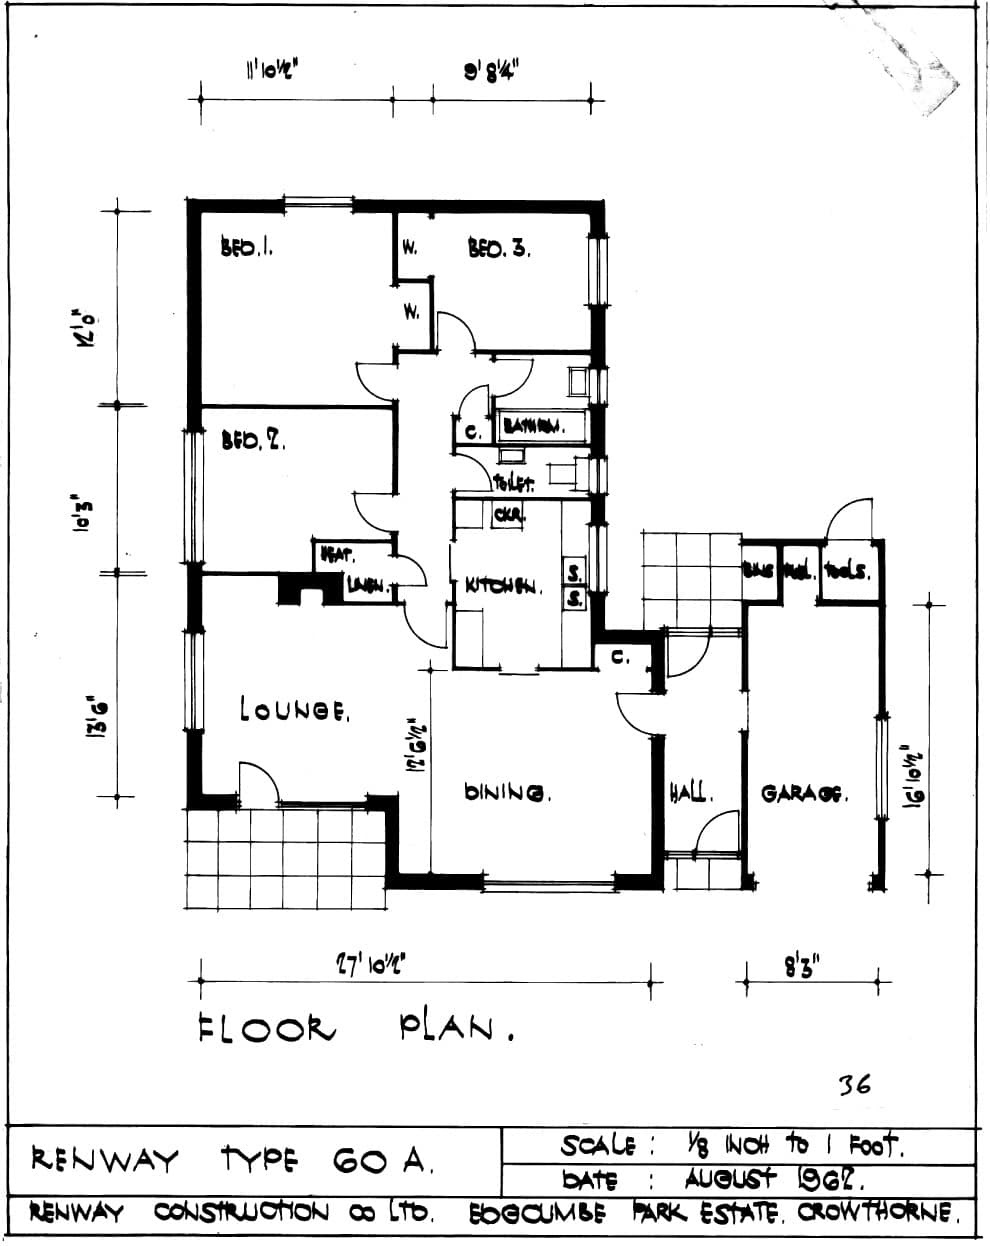 House Plans and Design: Architectural House Plans Bungalow